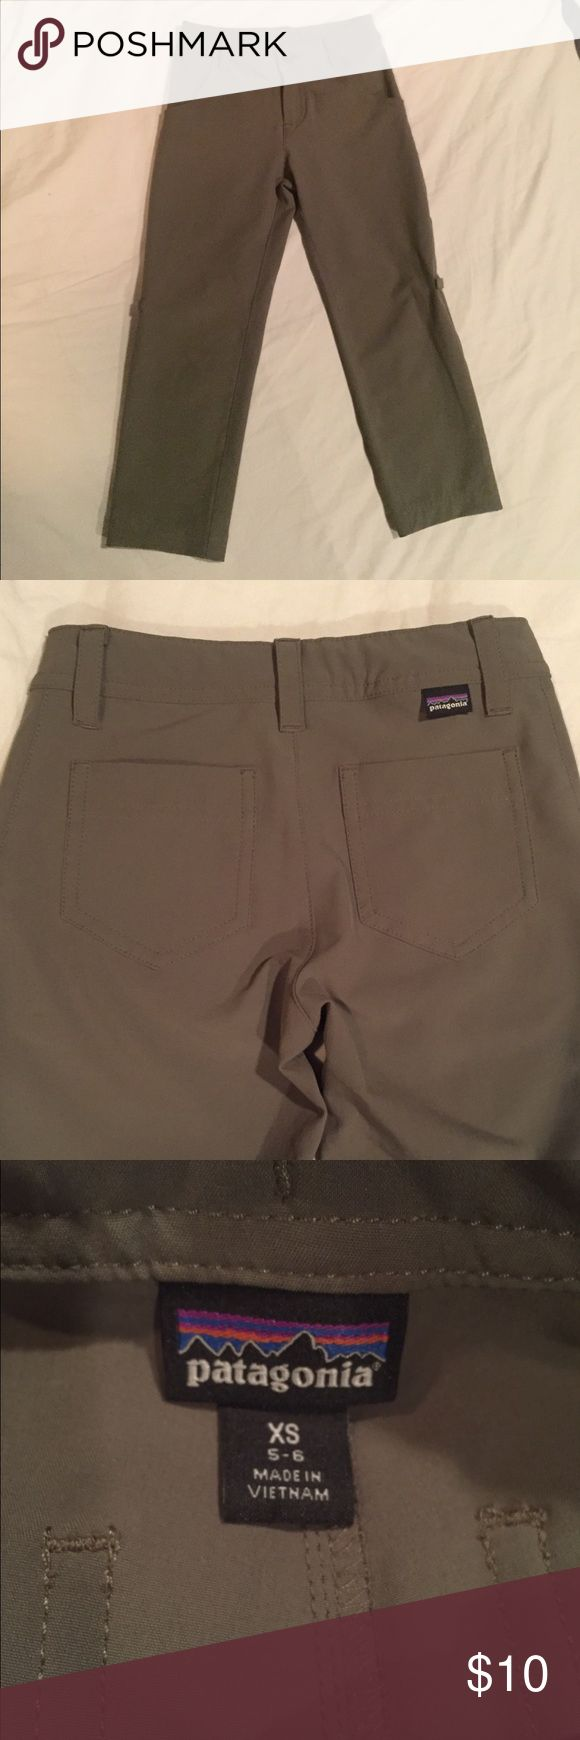 Patagonia Happy Hike Pants Girls Happy Hike pants from Patagonia. Olive/Army green color. Perfect condition, zero flaws. Girls XS. Adjustable waist inside and belt loops outside. Legs can fold up and be buttoned into shorts. Patagonia Bottoms Casual